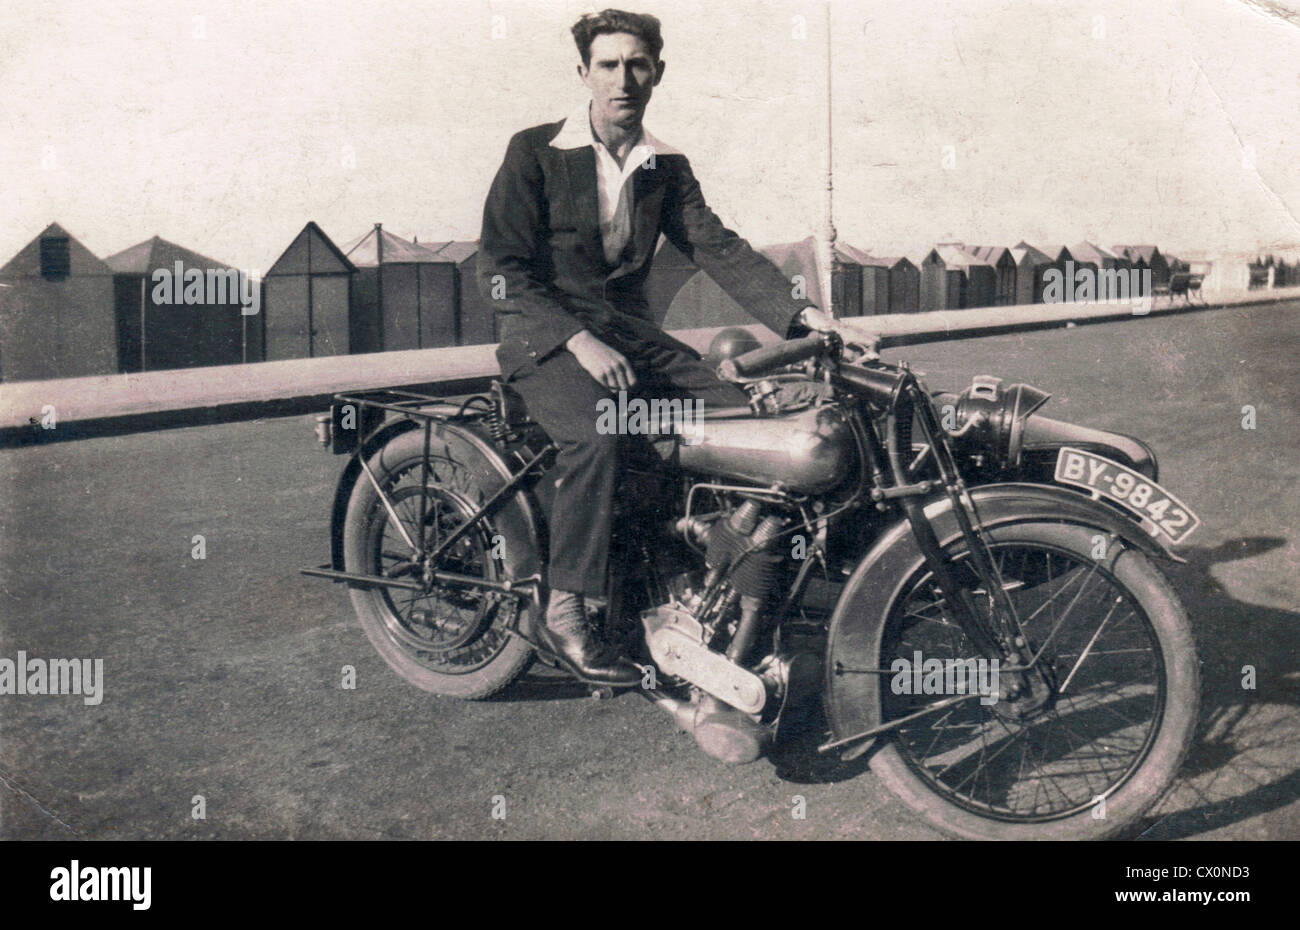 Motorcyclist on a brough superior motorcycle with sidecar combination on the seaside promenade in the